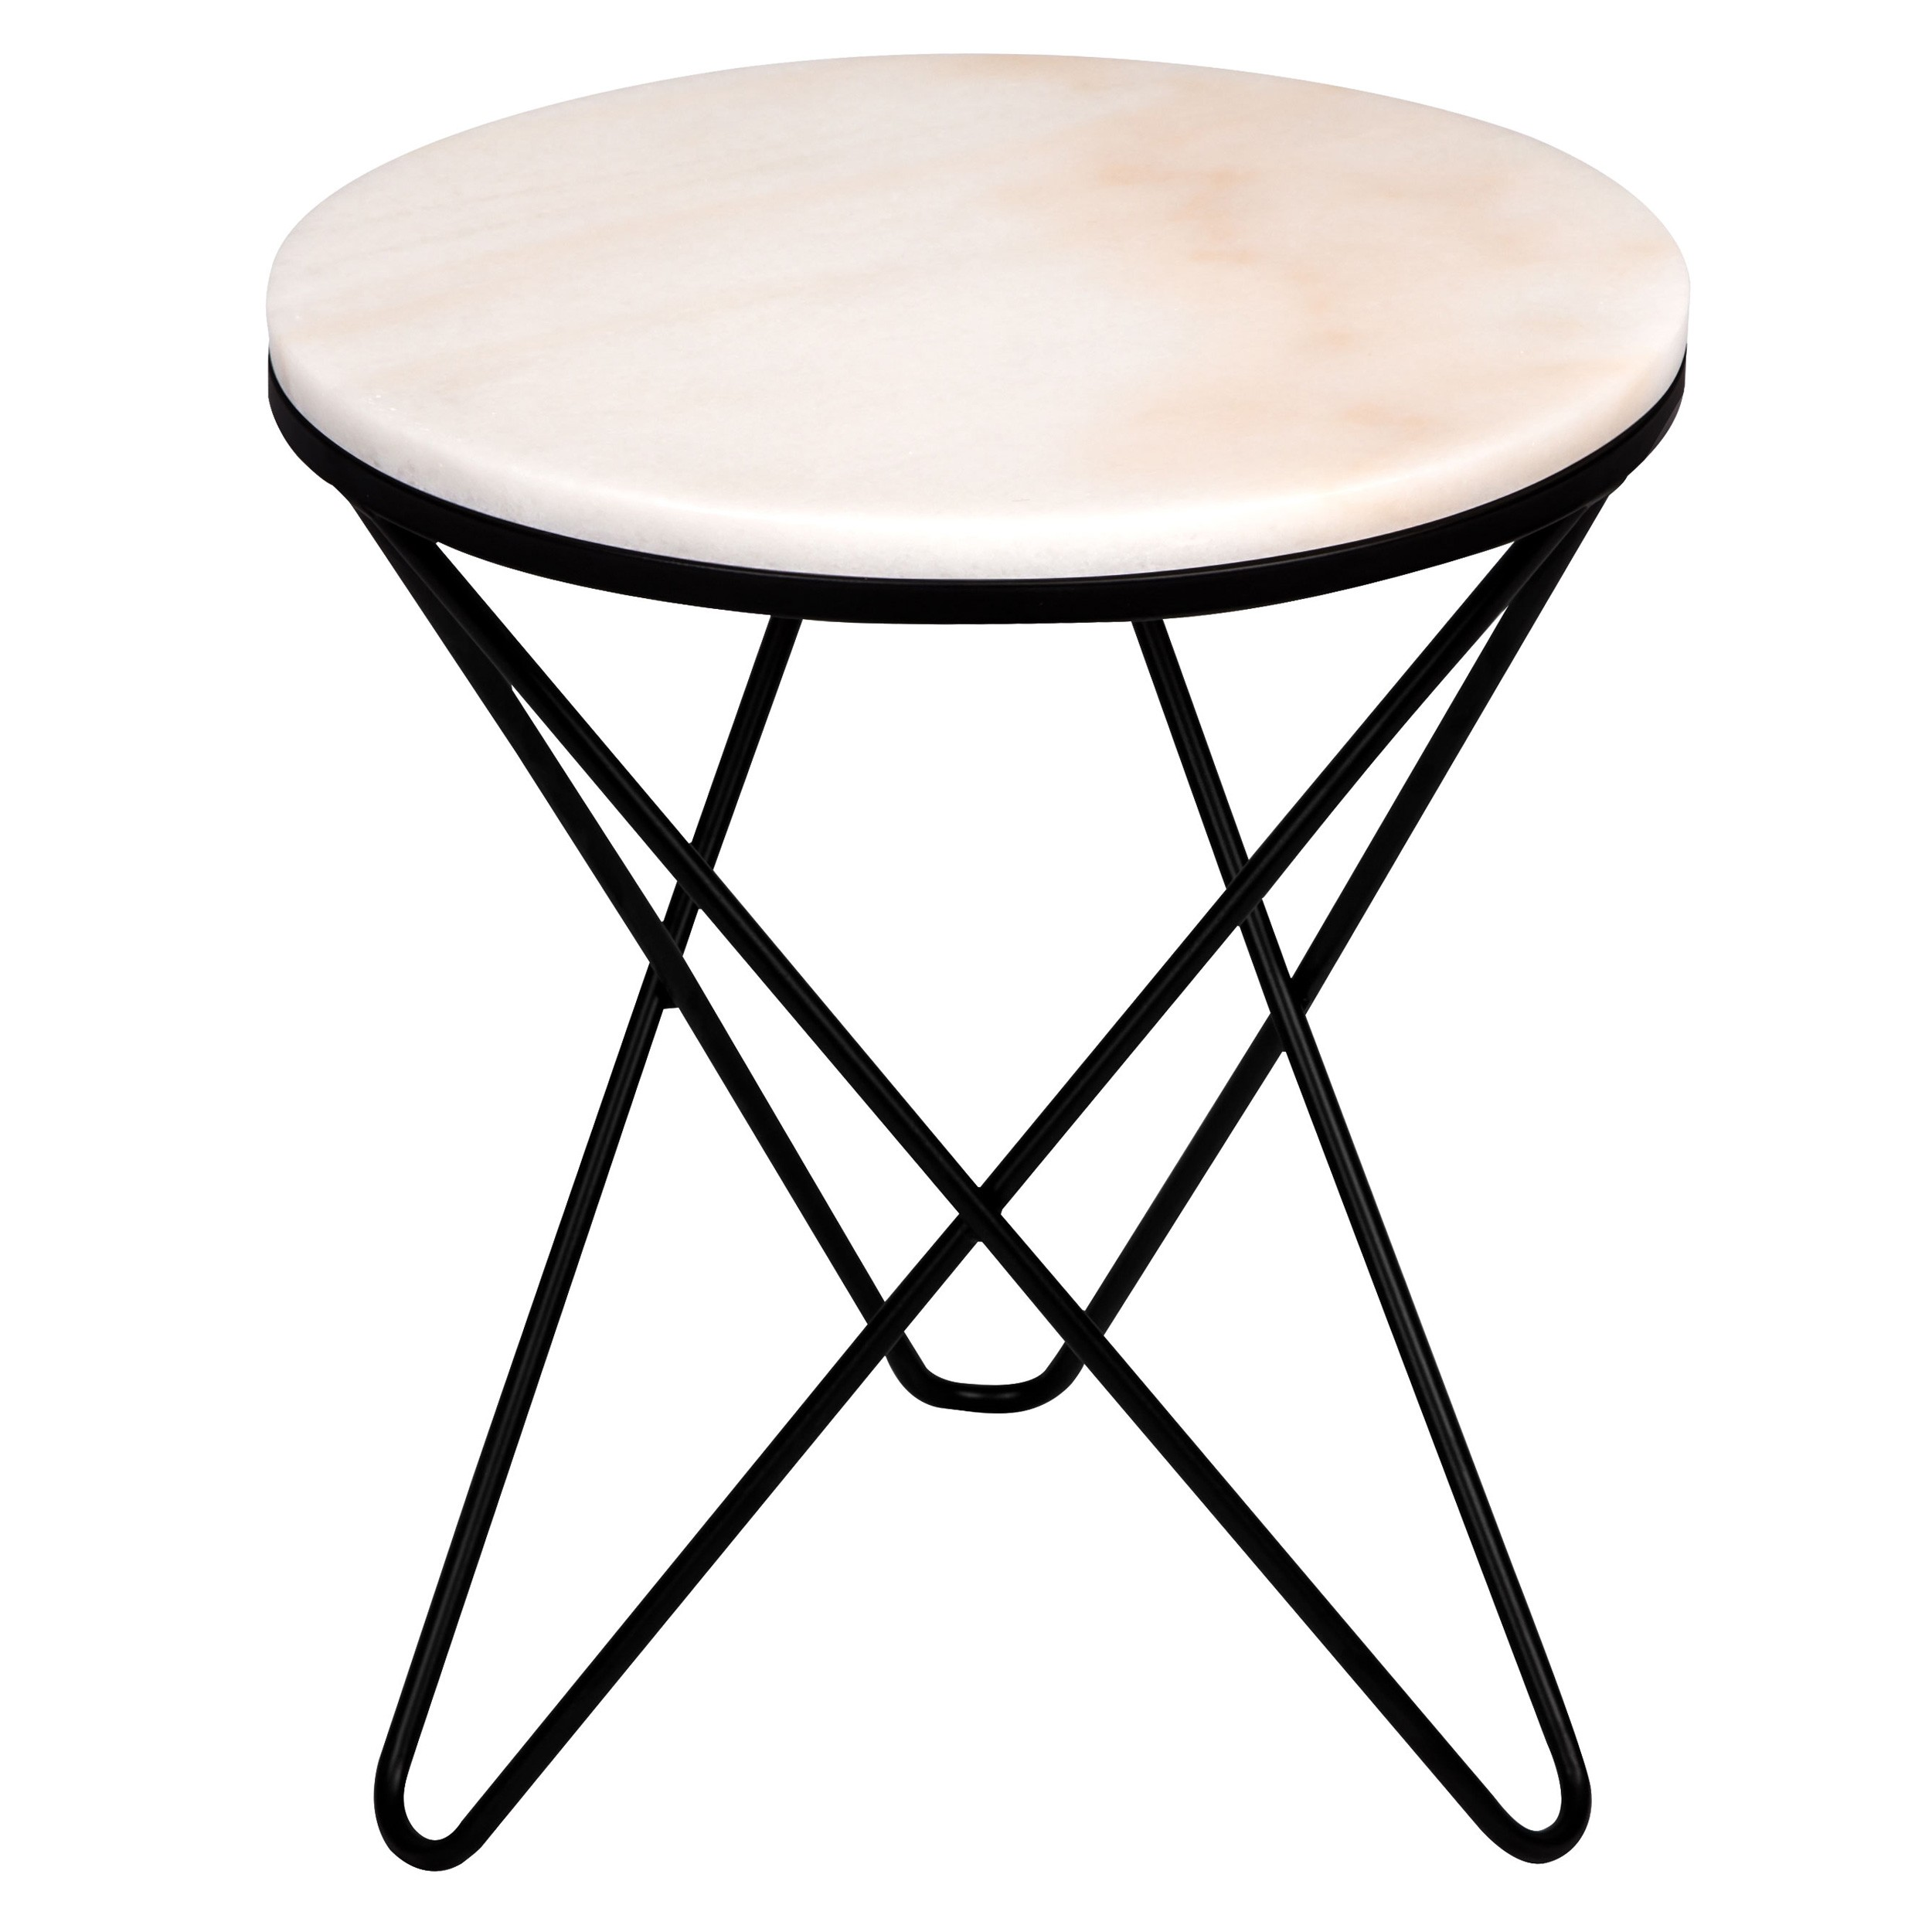 table basse marbre ronde table basse en marbre design. Black Bedroom Furniture Sets. Home Design Ideas